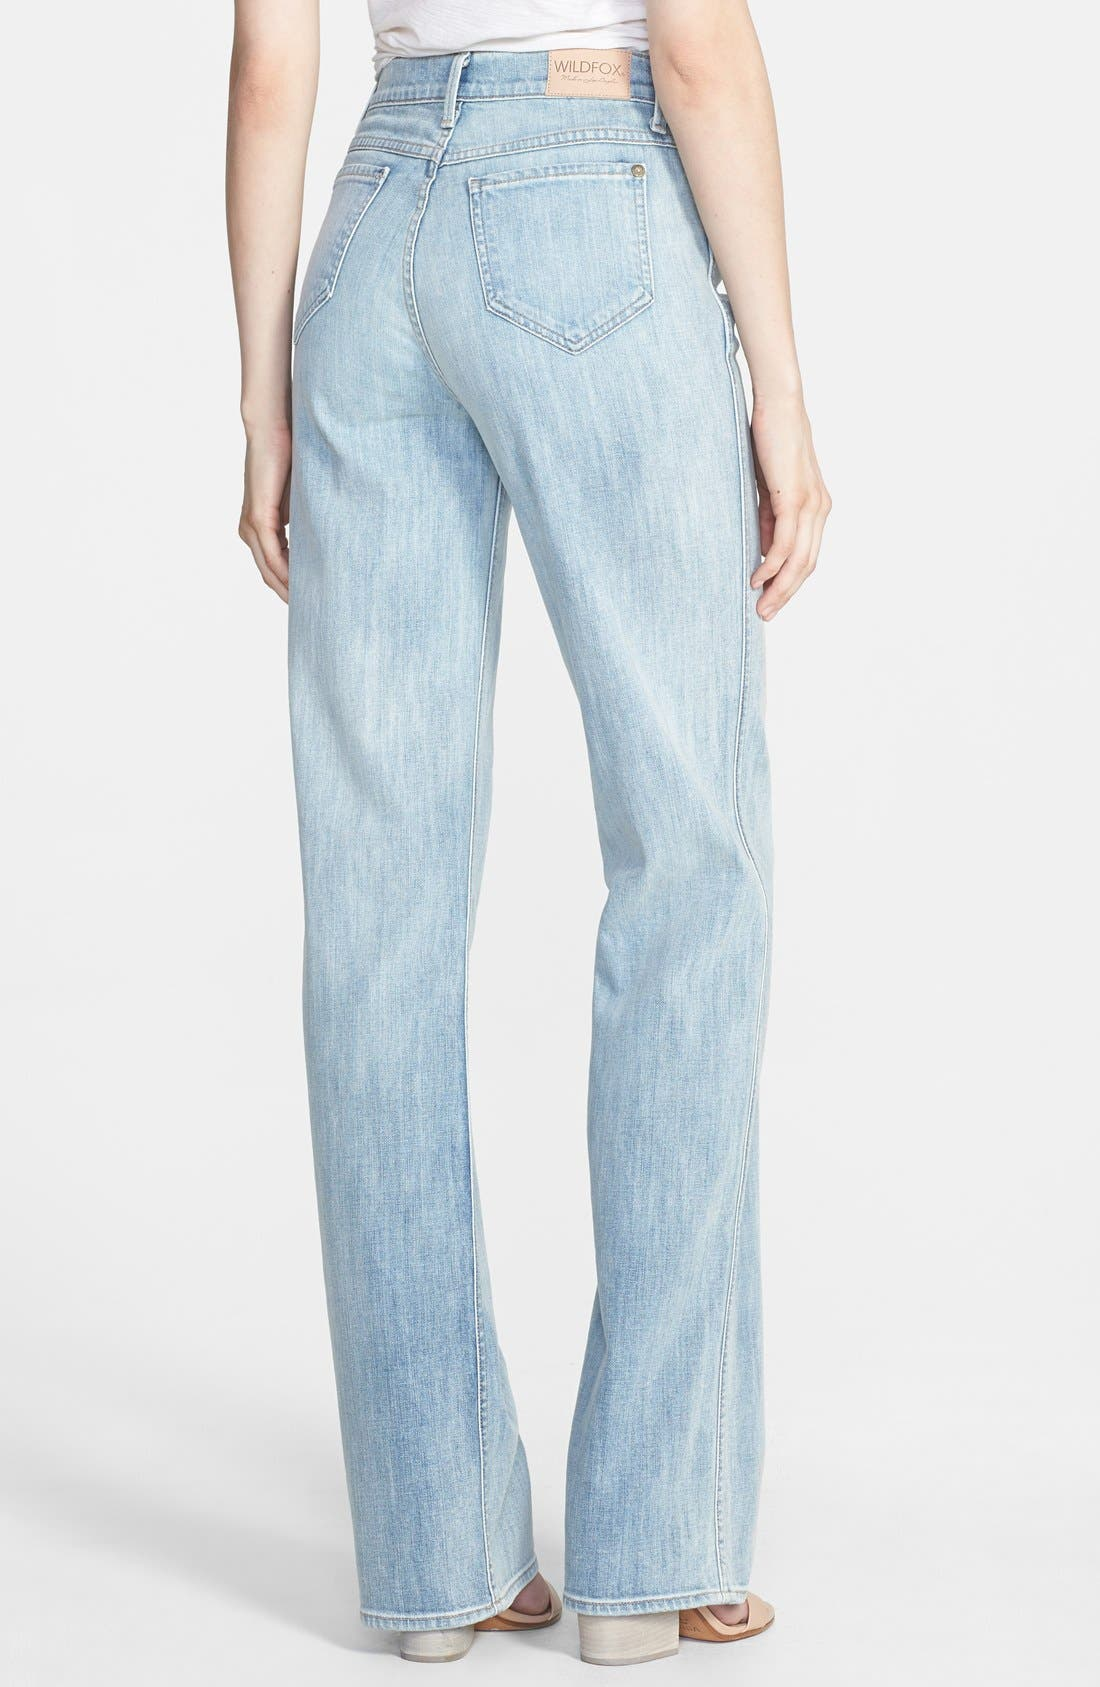 Alternate Image 2  - Wildfox 'Luca' High Rise Straight Leg Jeans (Faithful)